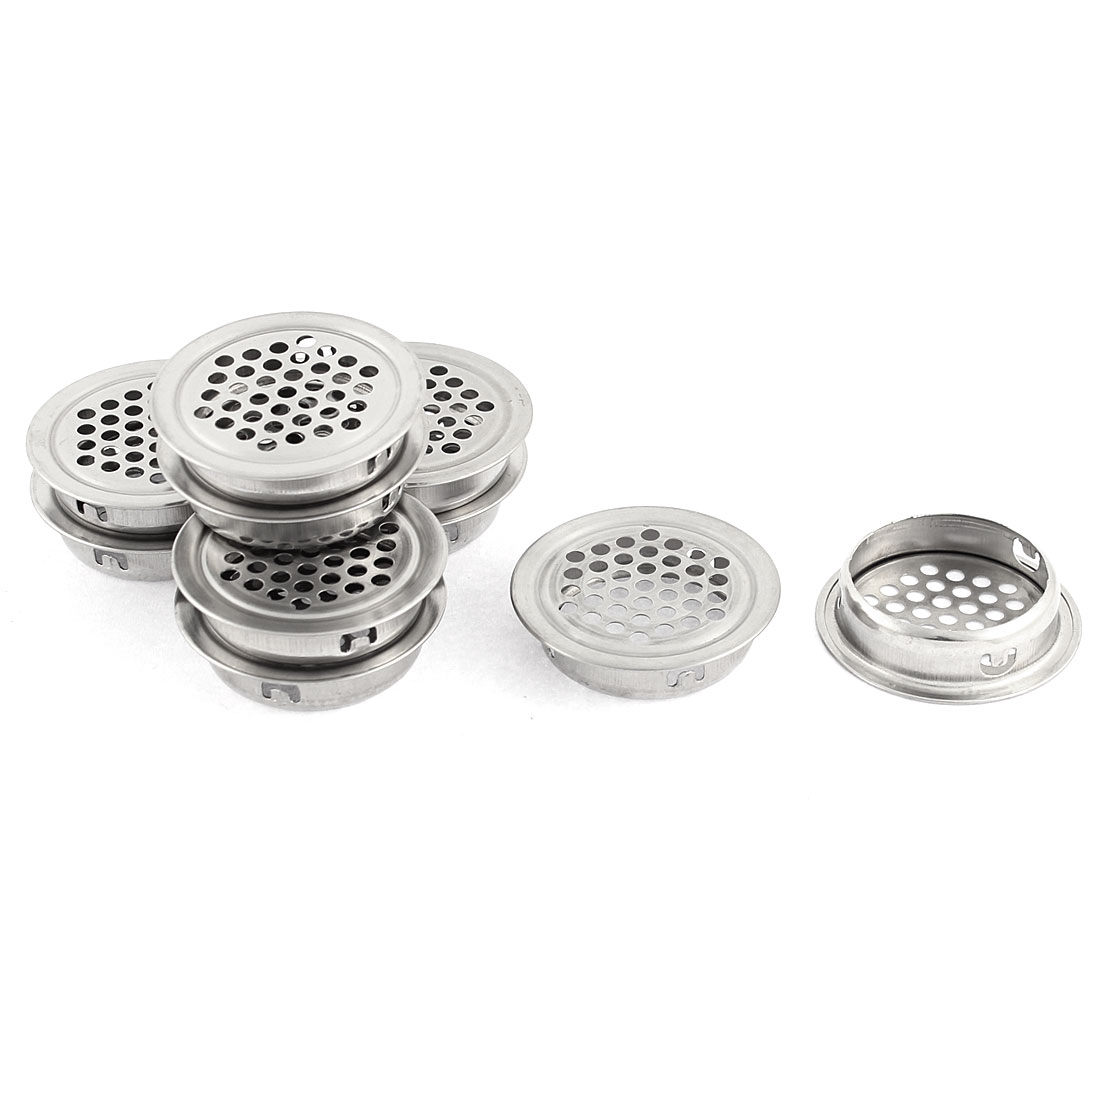 Kitchen Bathtub Waste Sink Strainer Filter Drainer Stopper 42mm Head Dia 10 Pcs - image 1 de 1